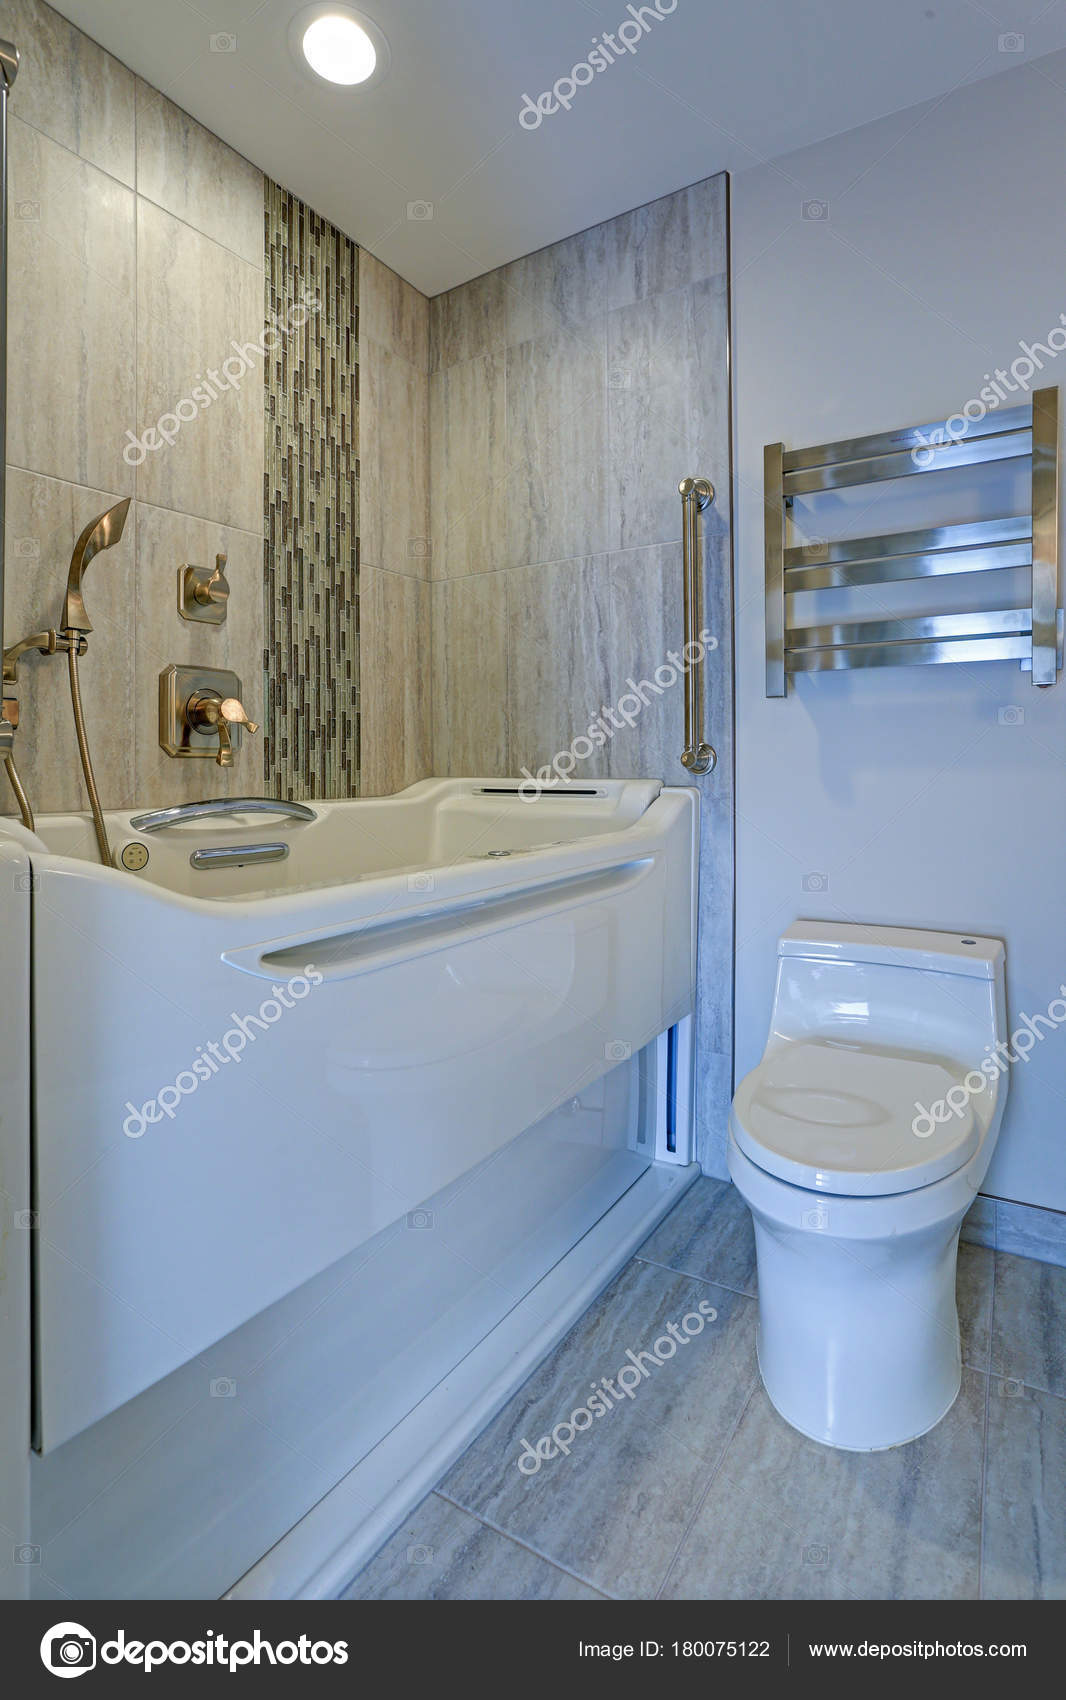 Contemporary Bathroom Design Boasts A Luxury Jacuzzi Walk In Bathtub  Flanked By Subway Tiled Interior Accented With Wide Glass Mosaic Tiled  Vertical Stripe ...